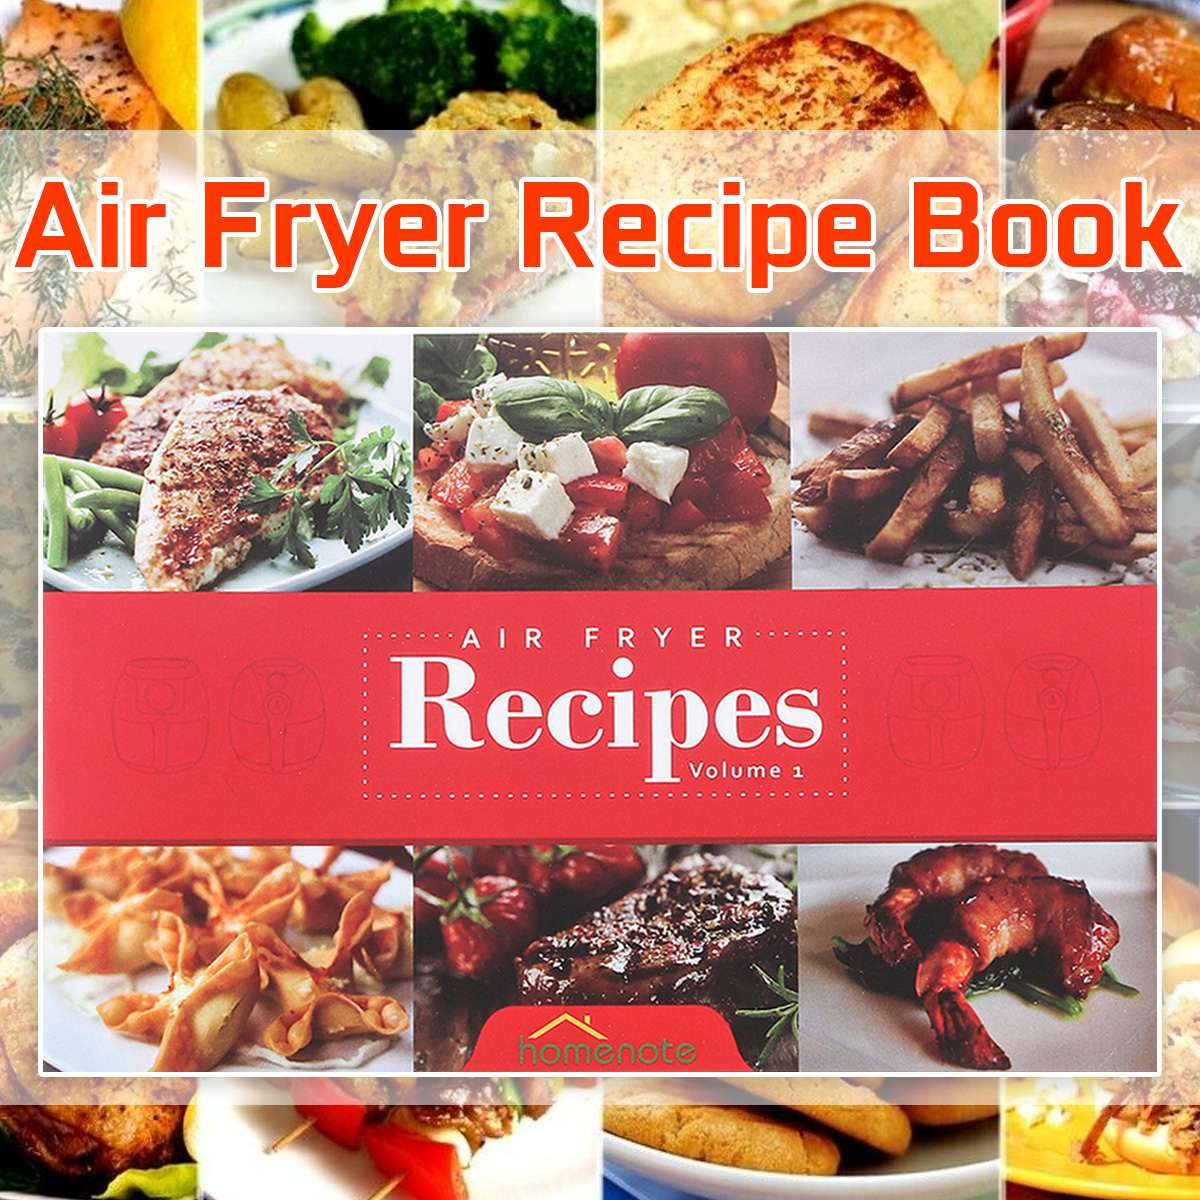 Air Fryer Cookbook : Air Fryer Recipe Book Recipe Book With 15 Delicious Meals English Language Cookbook